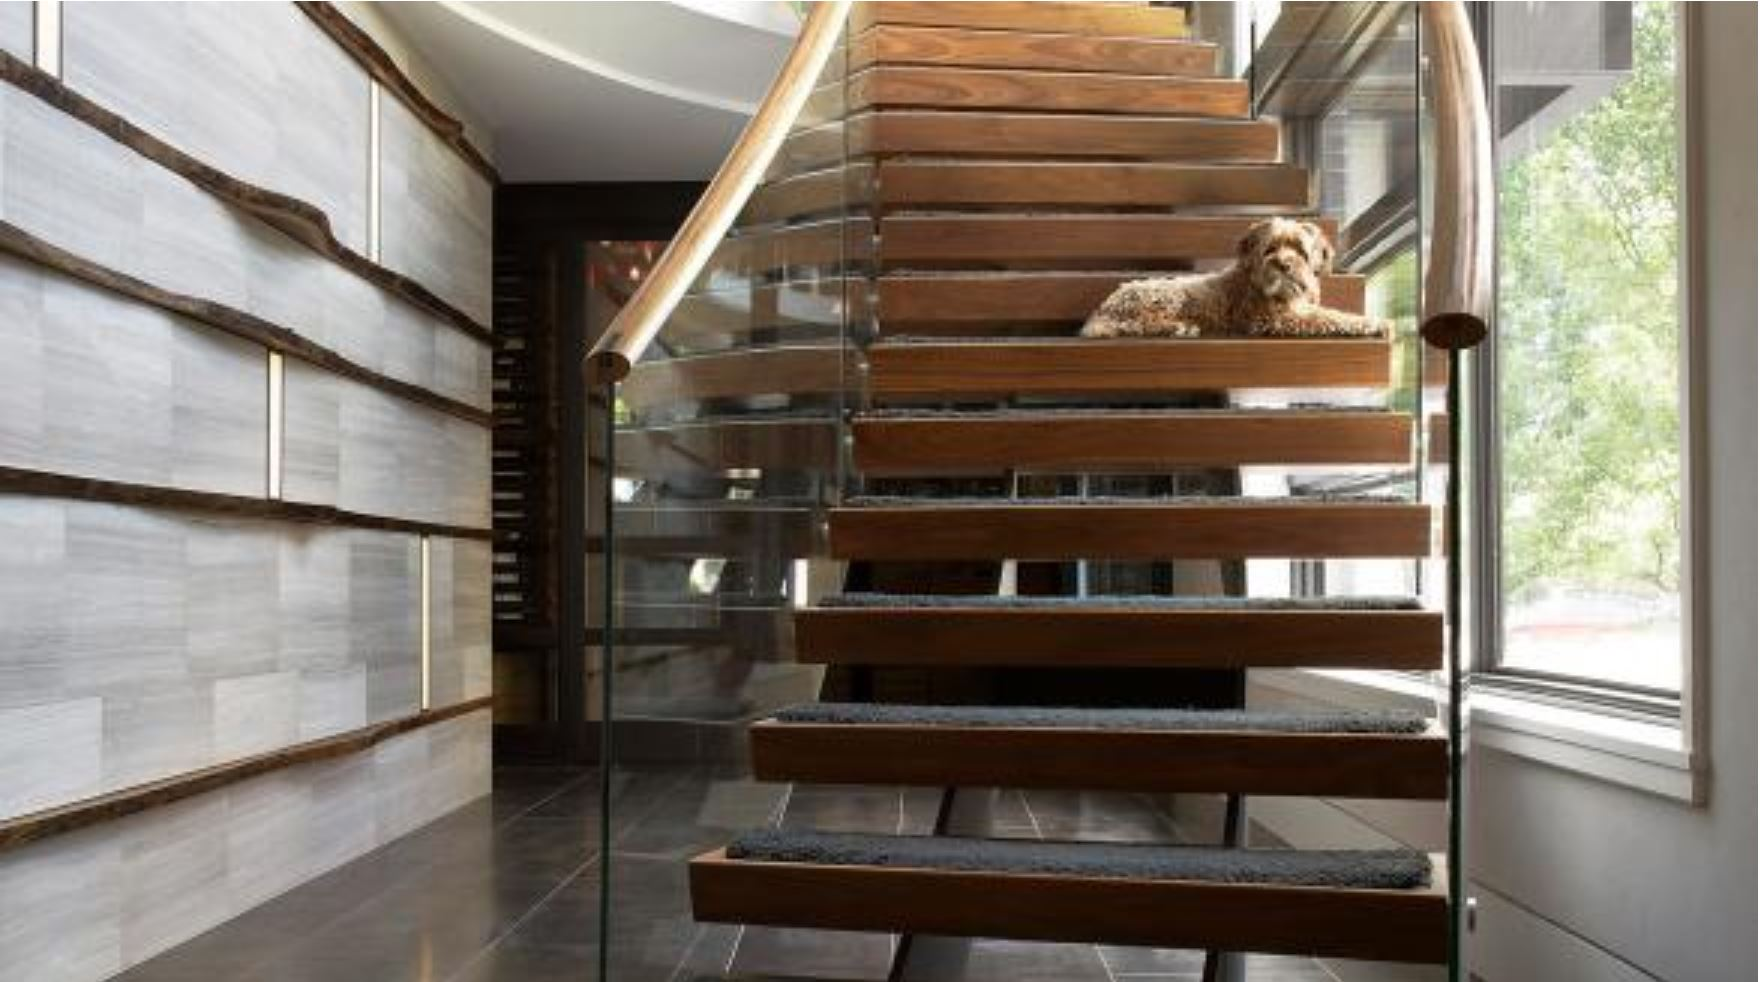 Realtor Magazine 2020 01 09 What's trending a dozen home and design ideas for 2020 Hoey Team eXp Realty